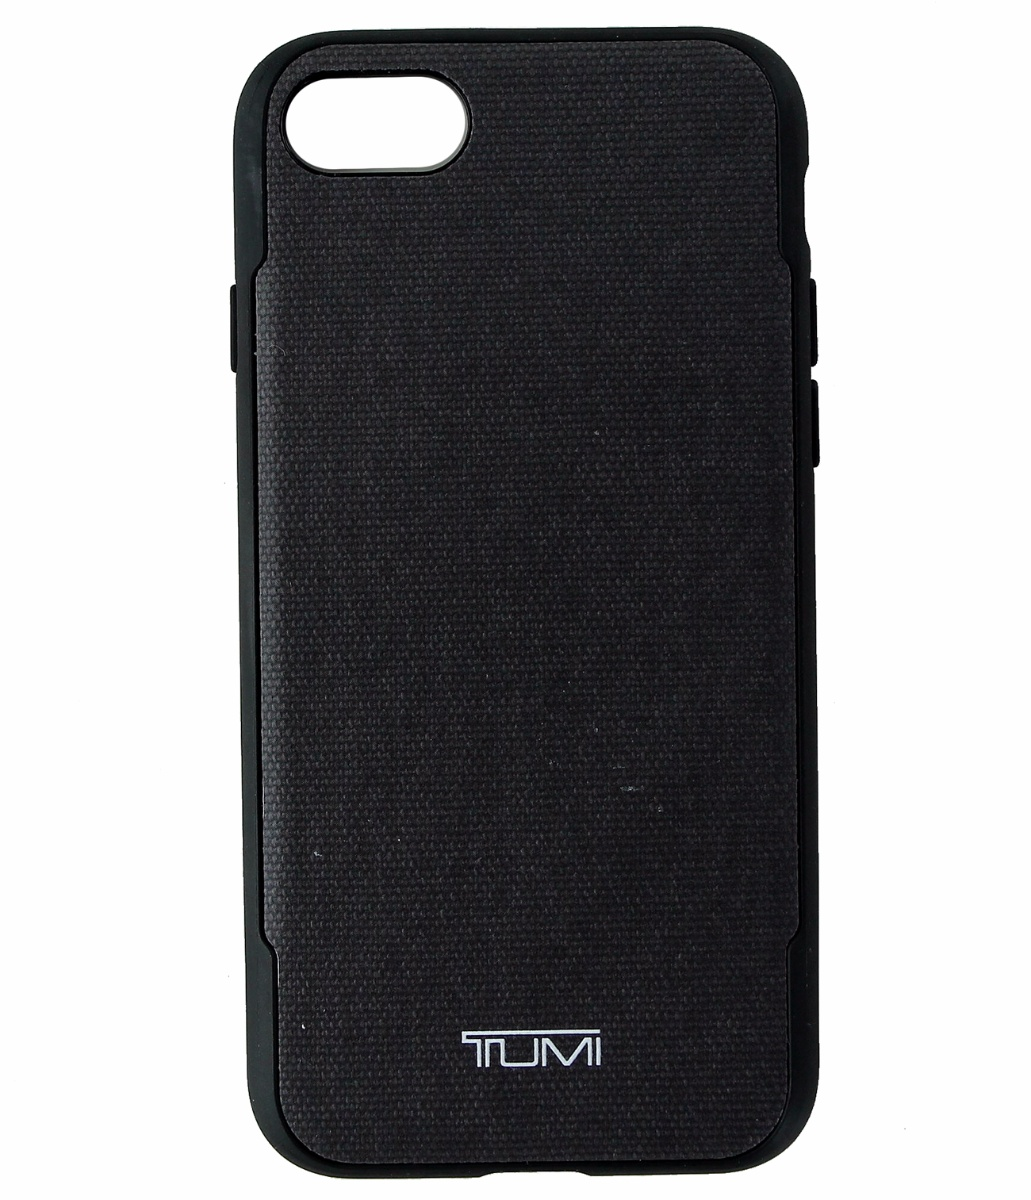 Tumi Coated Canvas Co-Mold Protective Case Cover for iPhone 7/8 - Gray Black